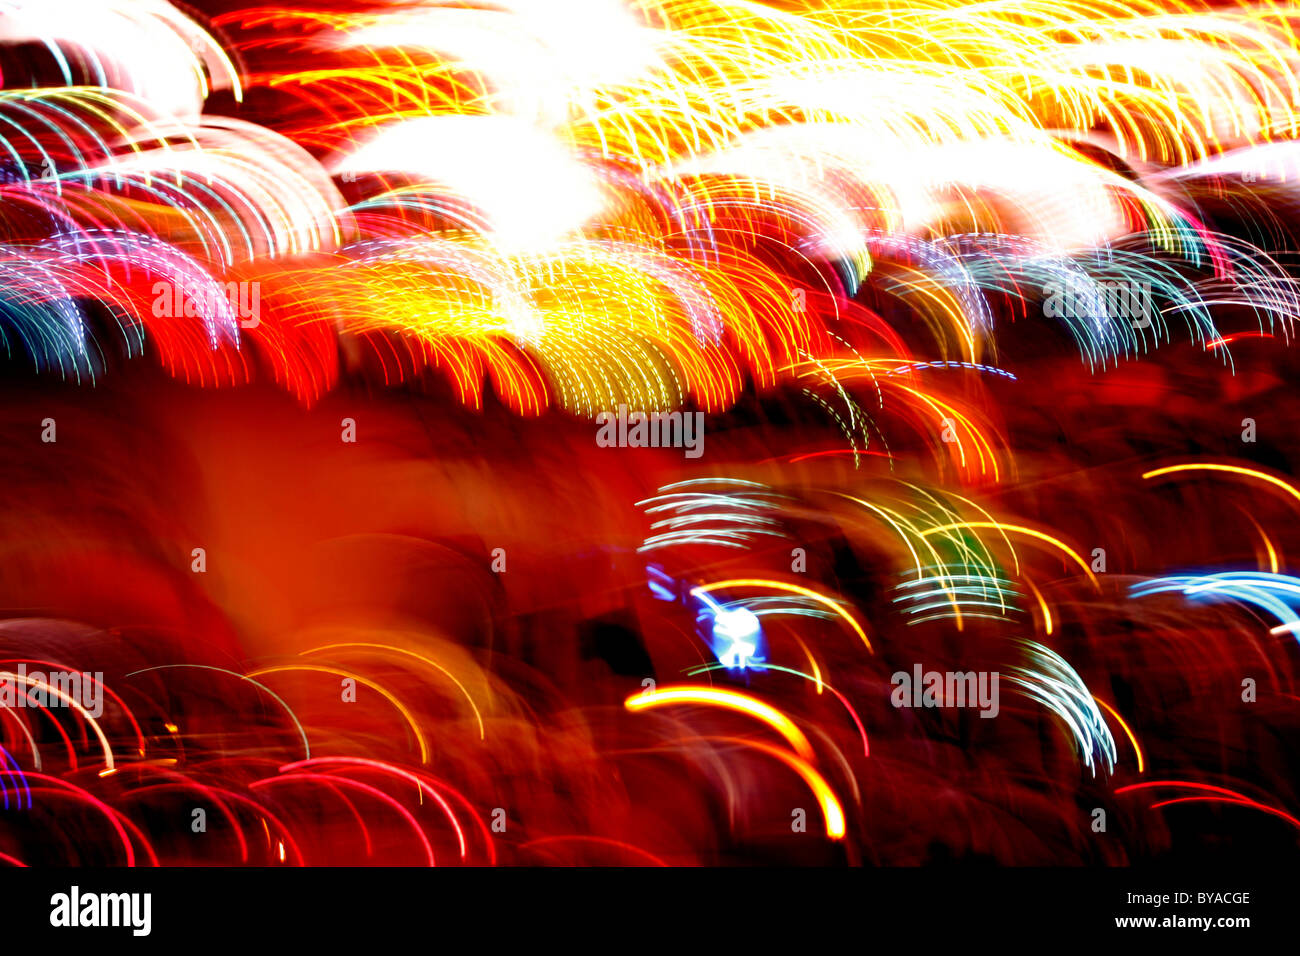 Abstract light painting - Stock Image